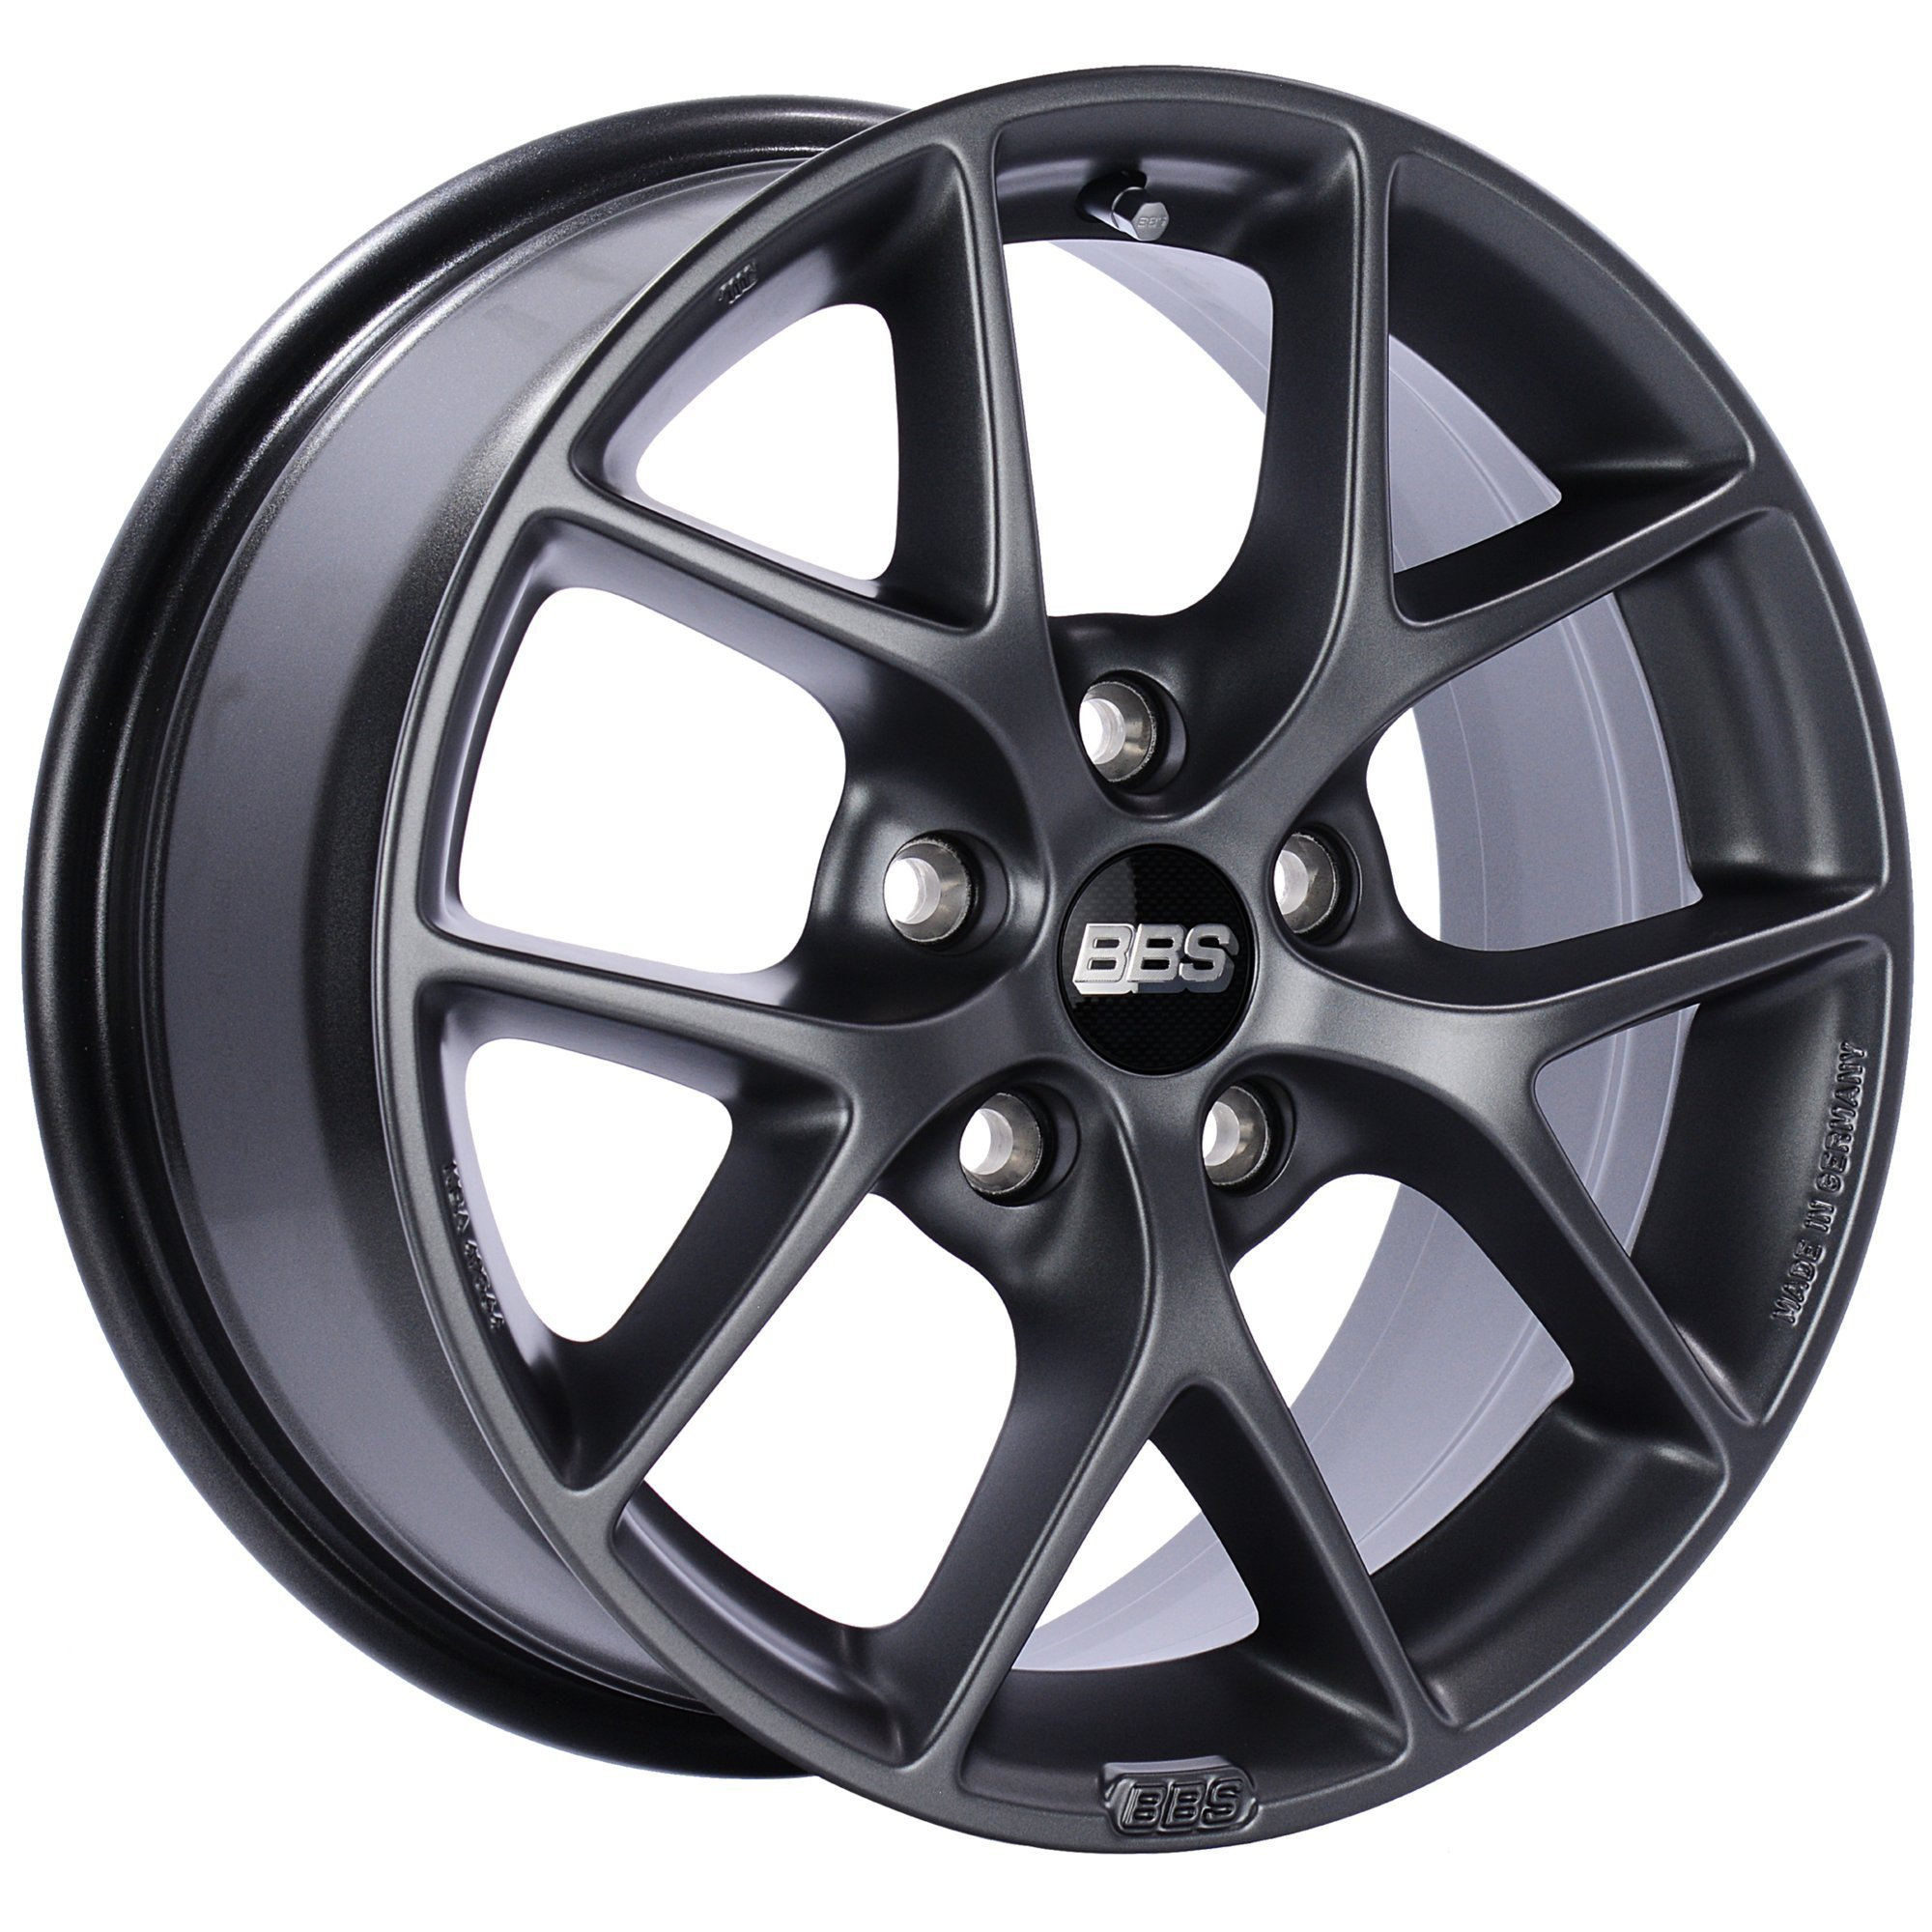 BBS SR Satin Grey Wheel with Painted Finish (18 x 8. inches /5 x 112 mm, 35 mm Offset)